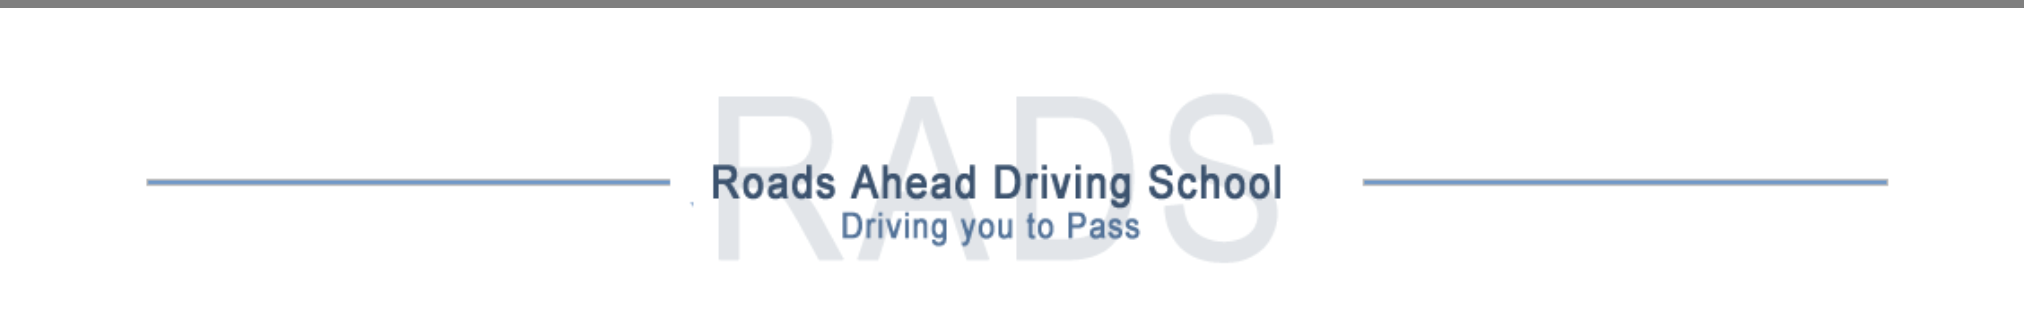 Roads Ahead Driving School